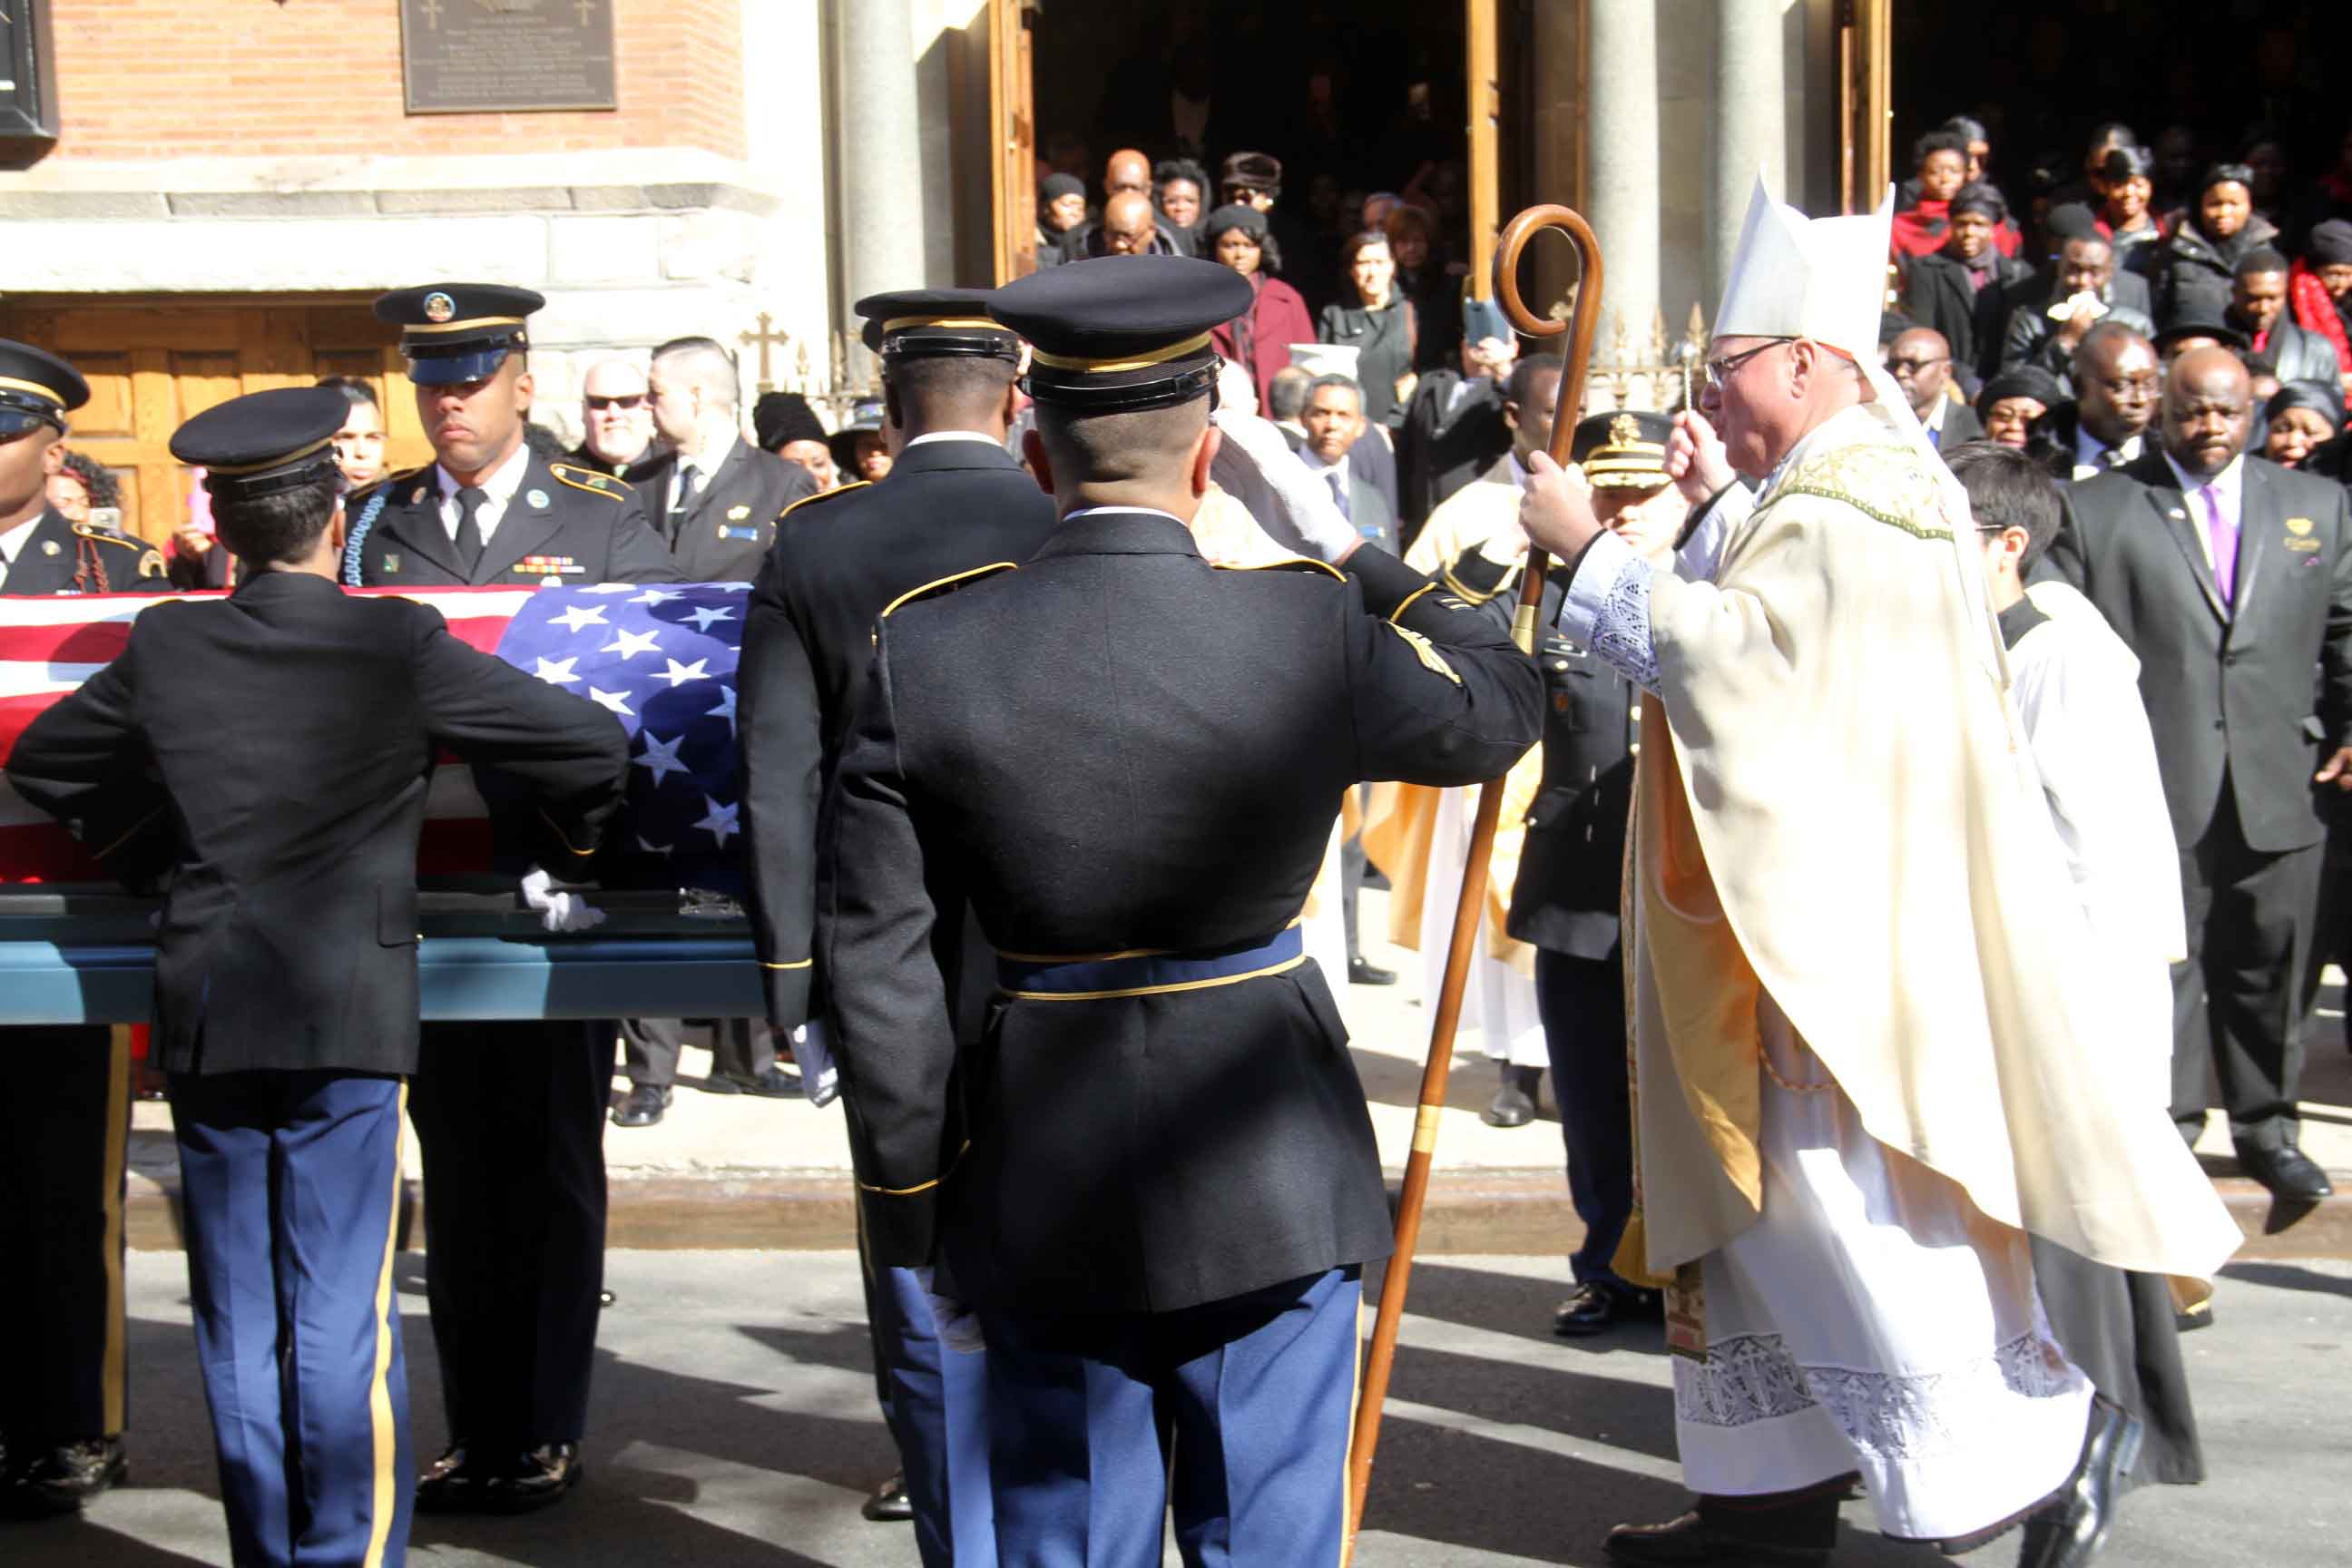 Cardinal Timothy Dolan sprinkles holy water on the flag-draped coffin of Private First Class Emmanuel Mensah. Photo by David Greene